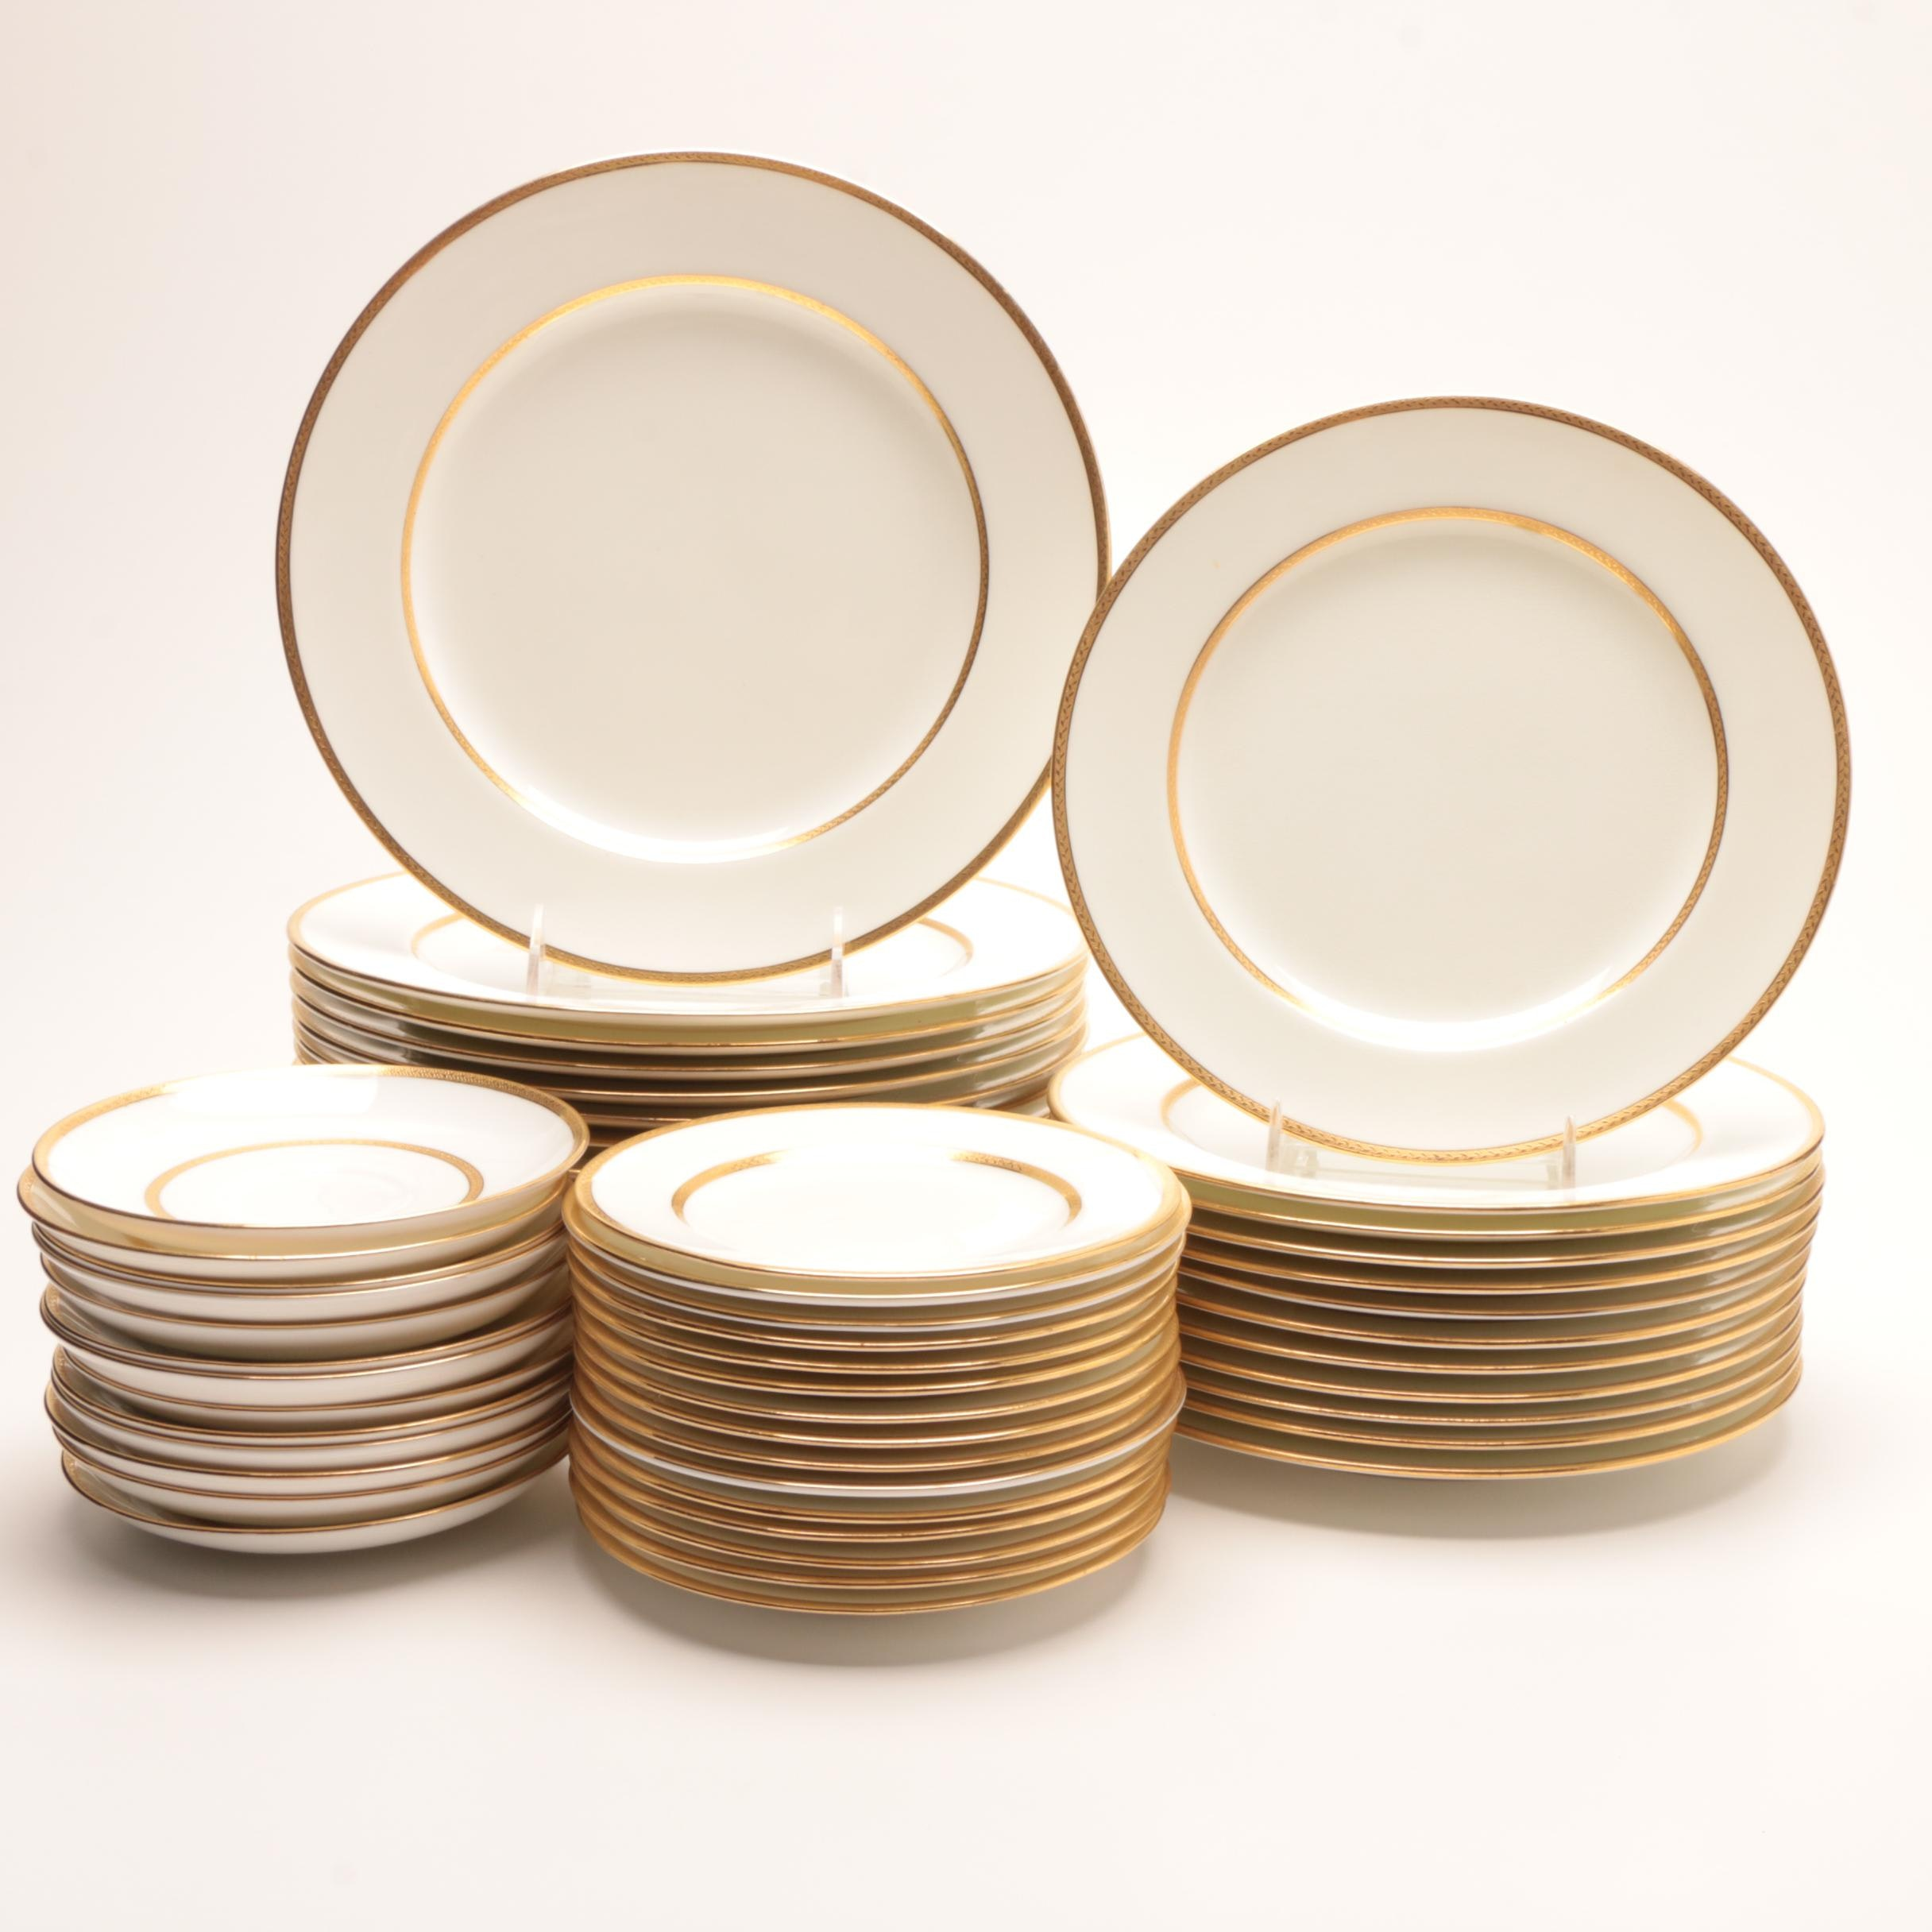 Minton Gold Encrusted Bone China Dinnerware